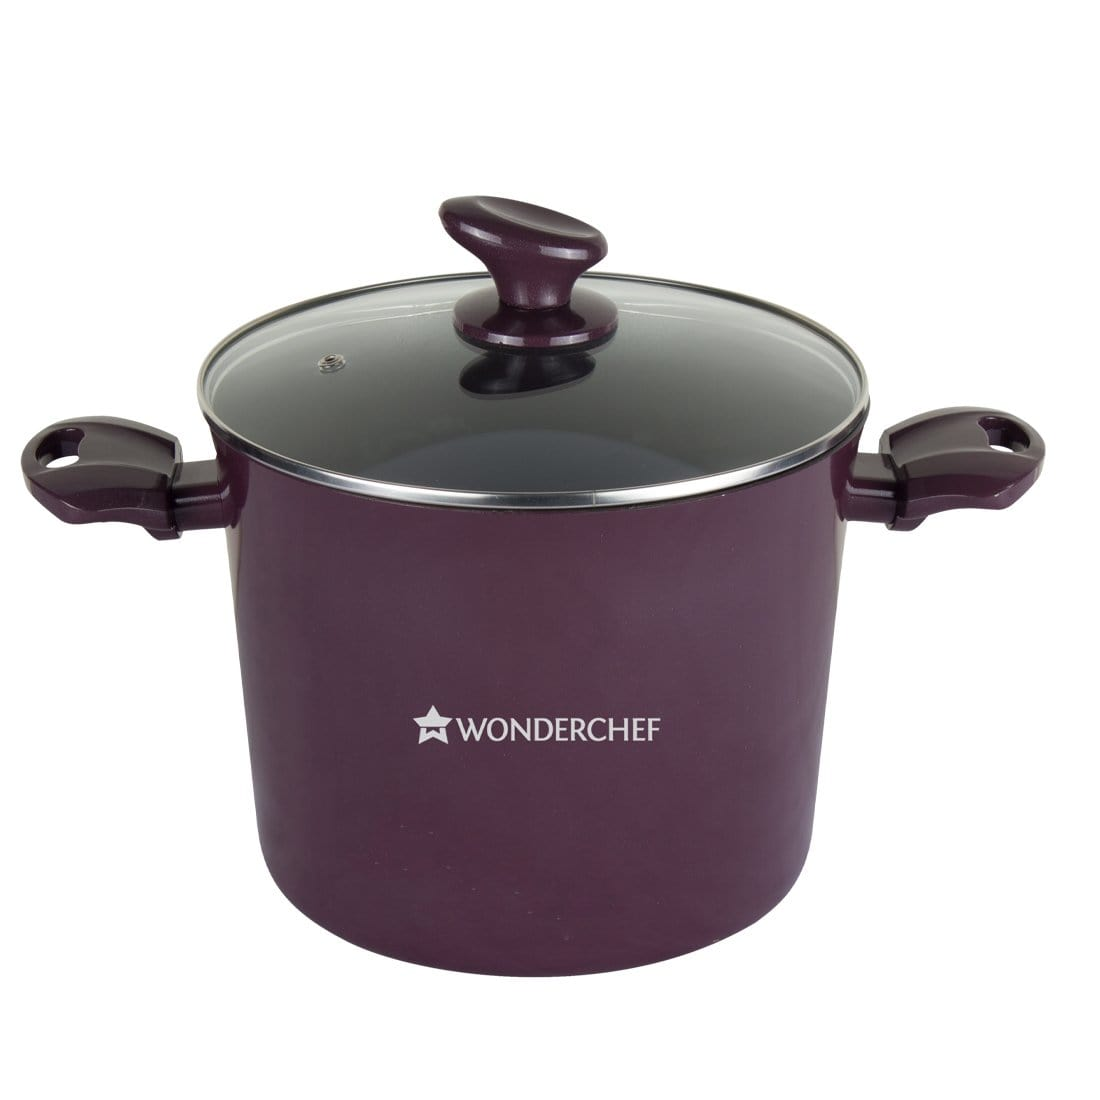 Wonderchef Everest Casserole